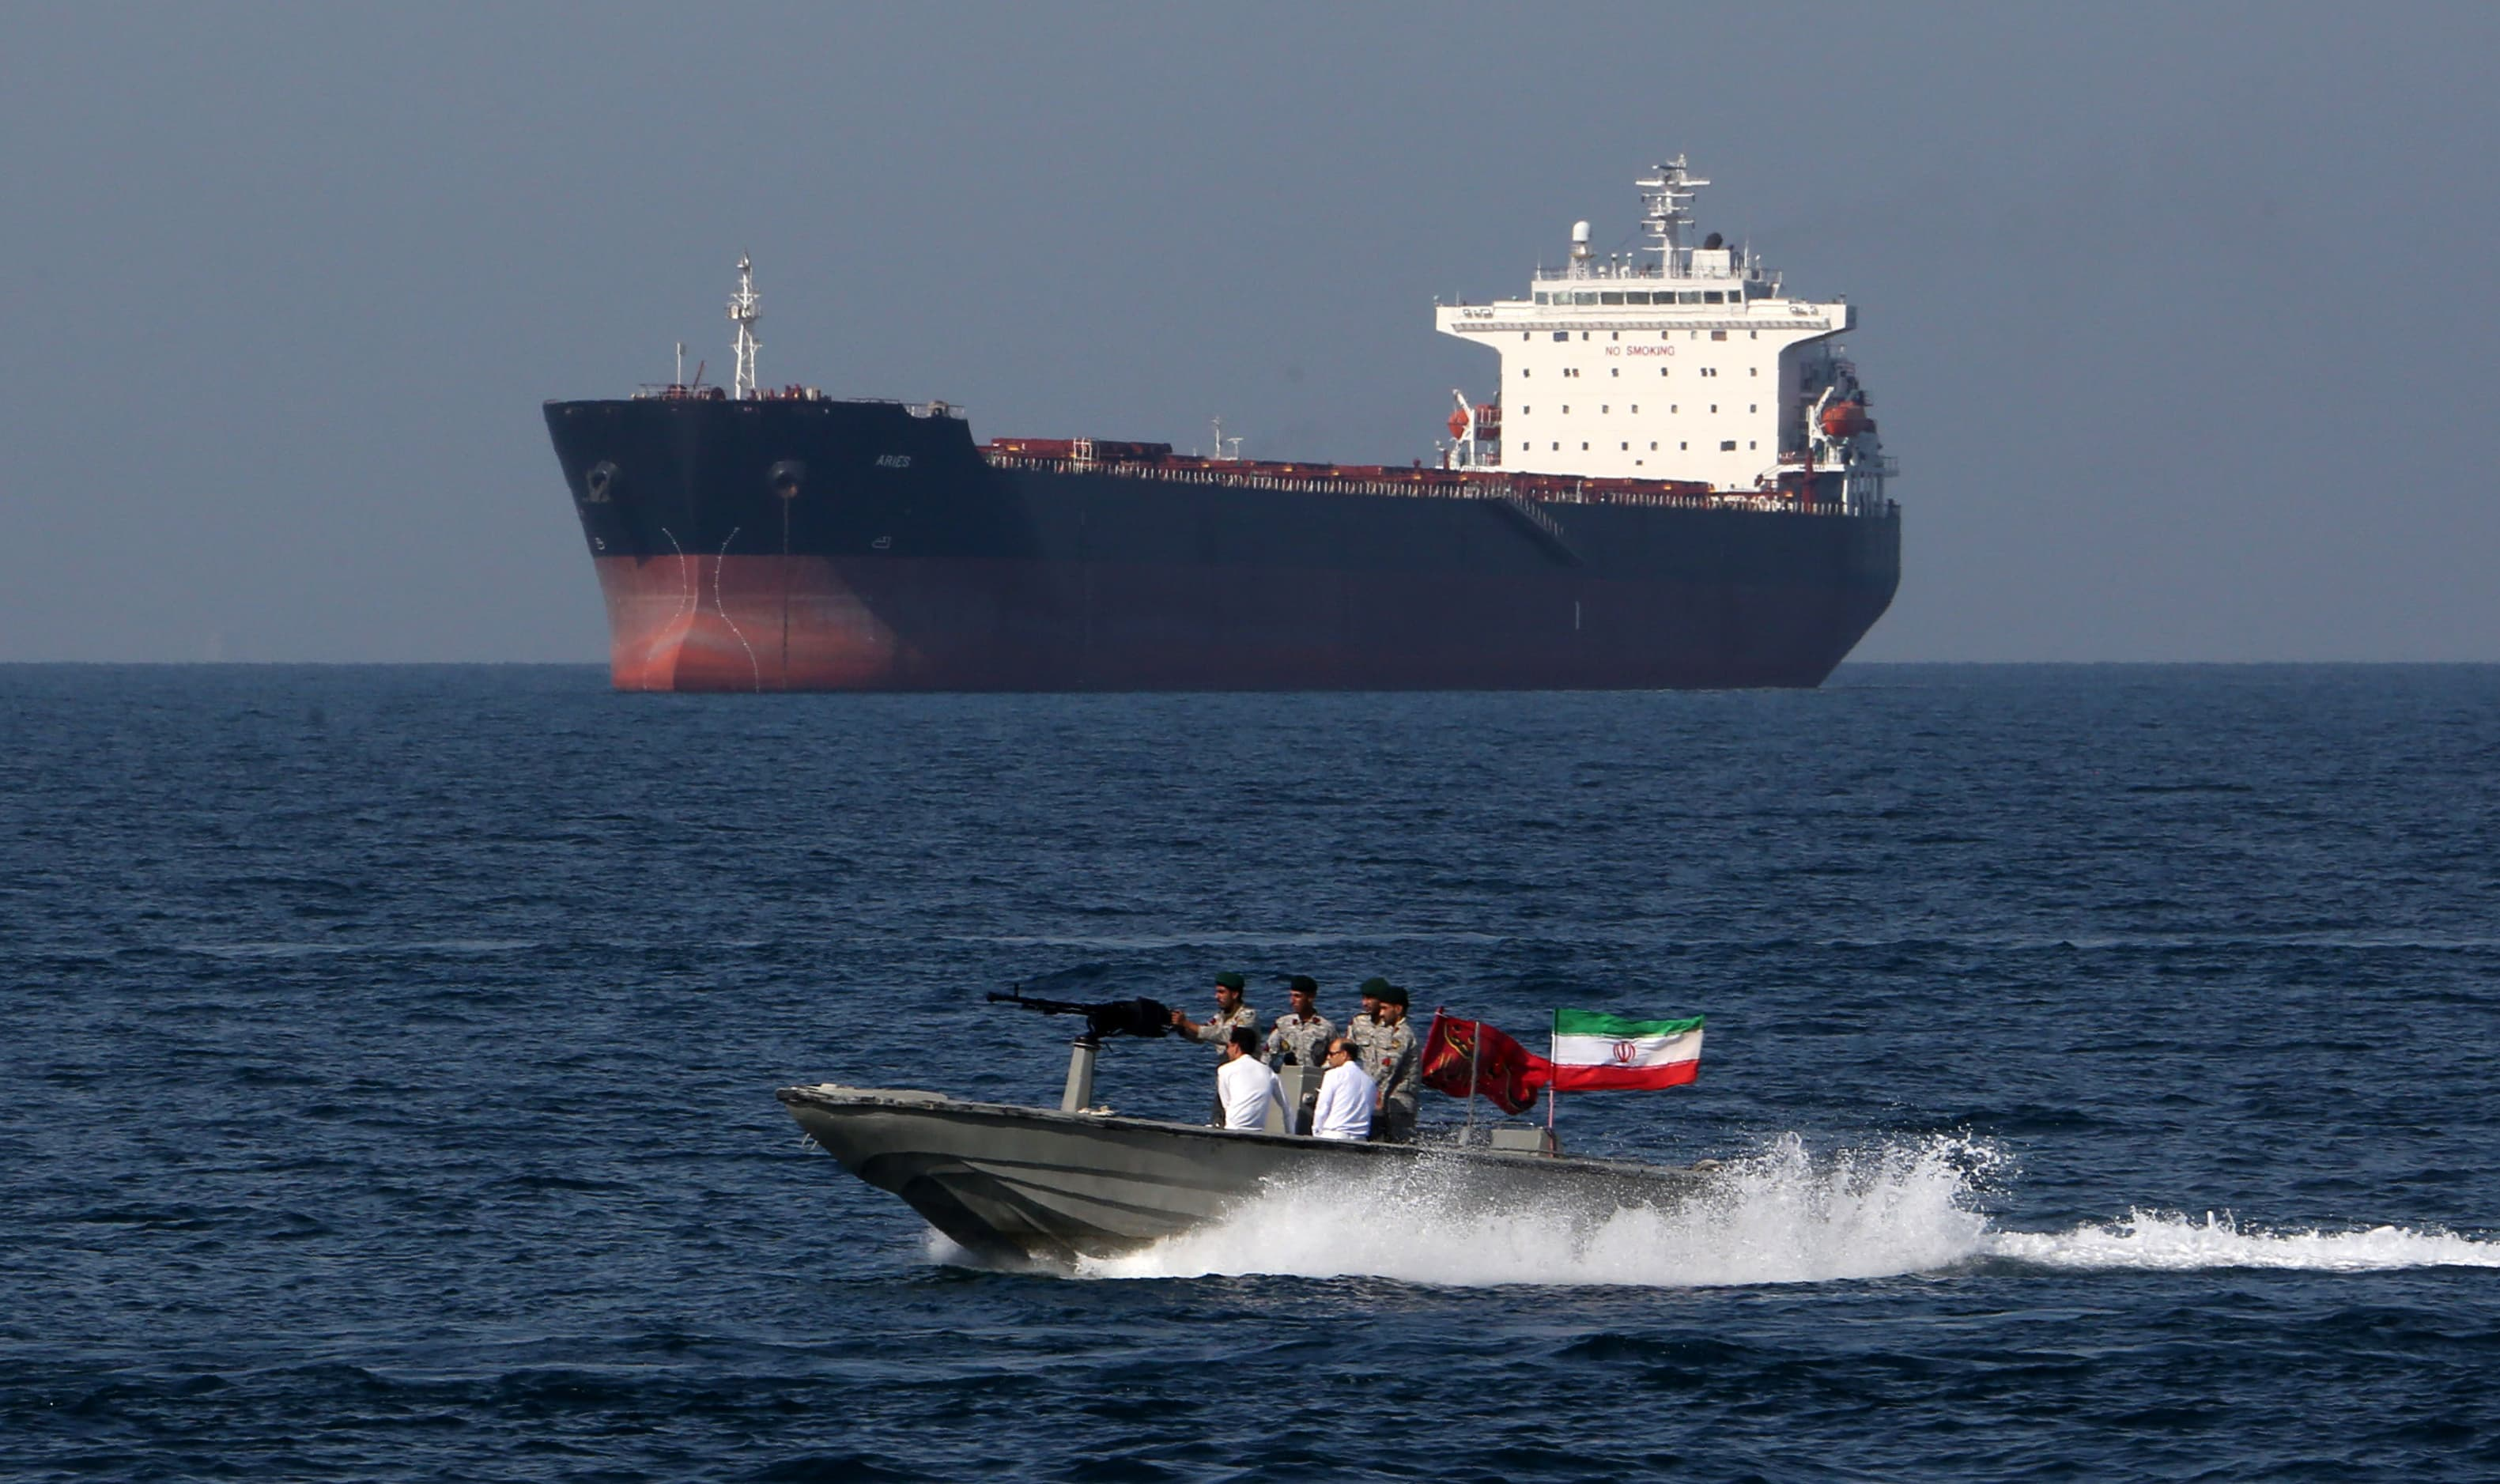 Iranian boats harass British tanker in the Gulf: US officials thumbnail